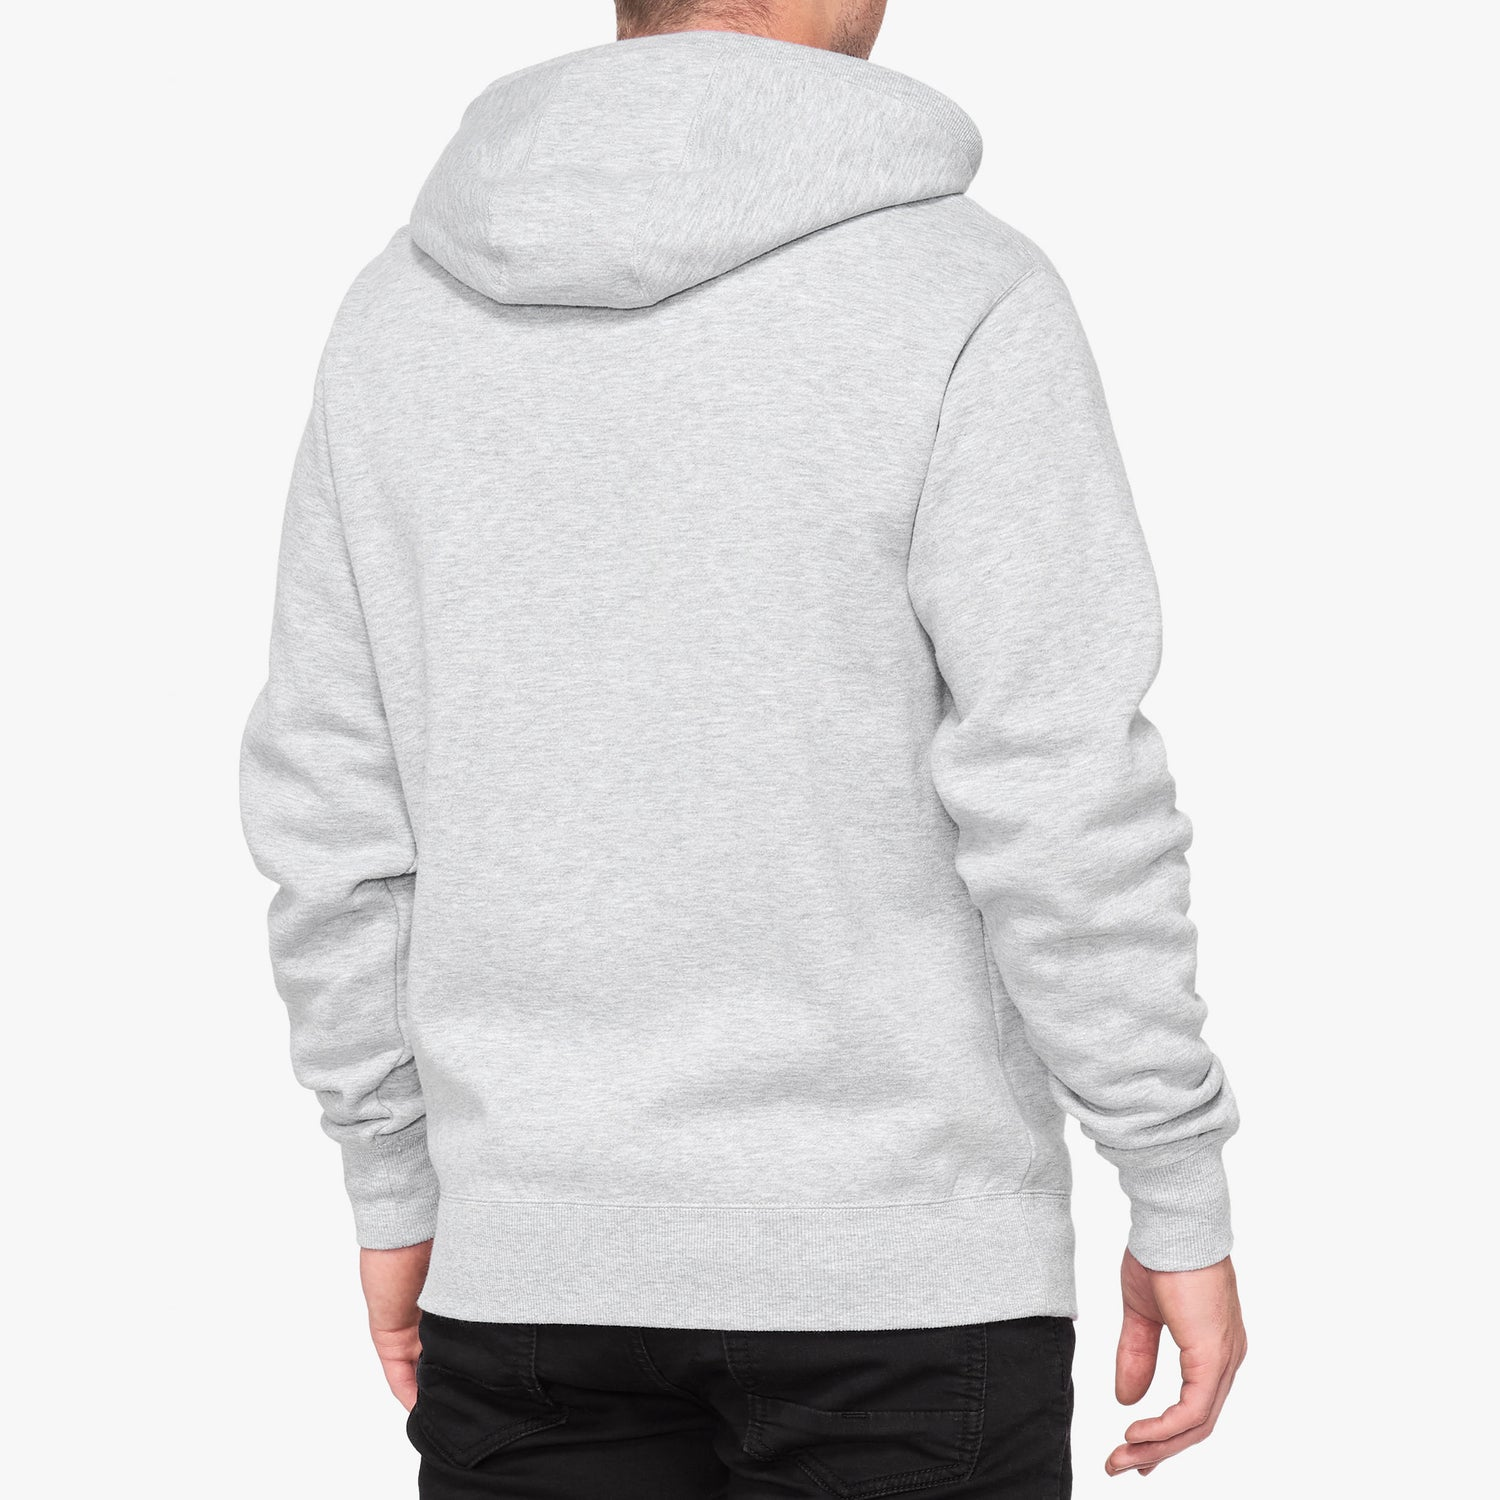 SYNDICATE Hooded Zip Sweatshirt Grey Heather